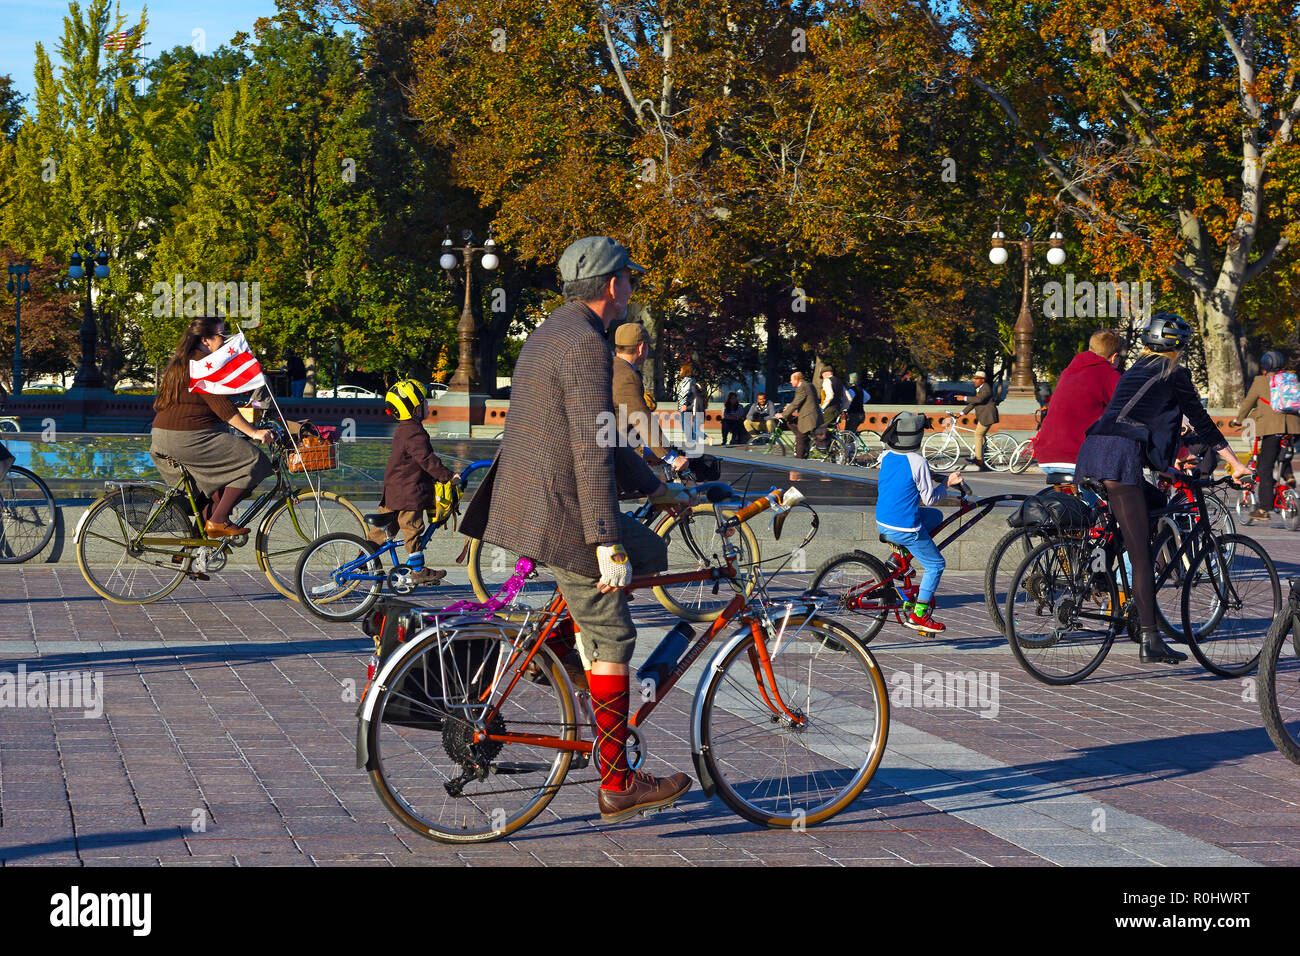 Washington DC, USA. 4th Nov 2018. Participants of DC's 2nd Tweed Ride event meticulously dressed for their bike ride on the US Capitol grounds. Ride of cyclists who refuse to endure anymore spandex and feel great to spin through our beautiful streets in the finest most dapper attire. Credit: Andrei Medvedev/Alamy Live News - Stock Image